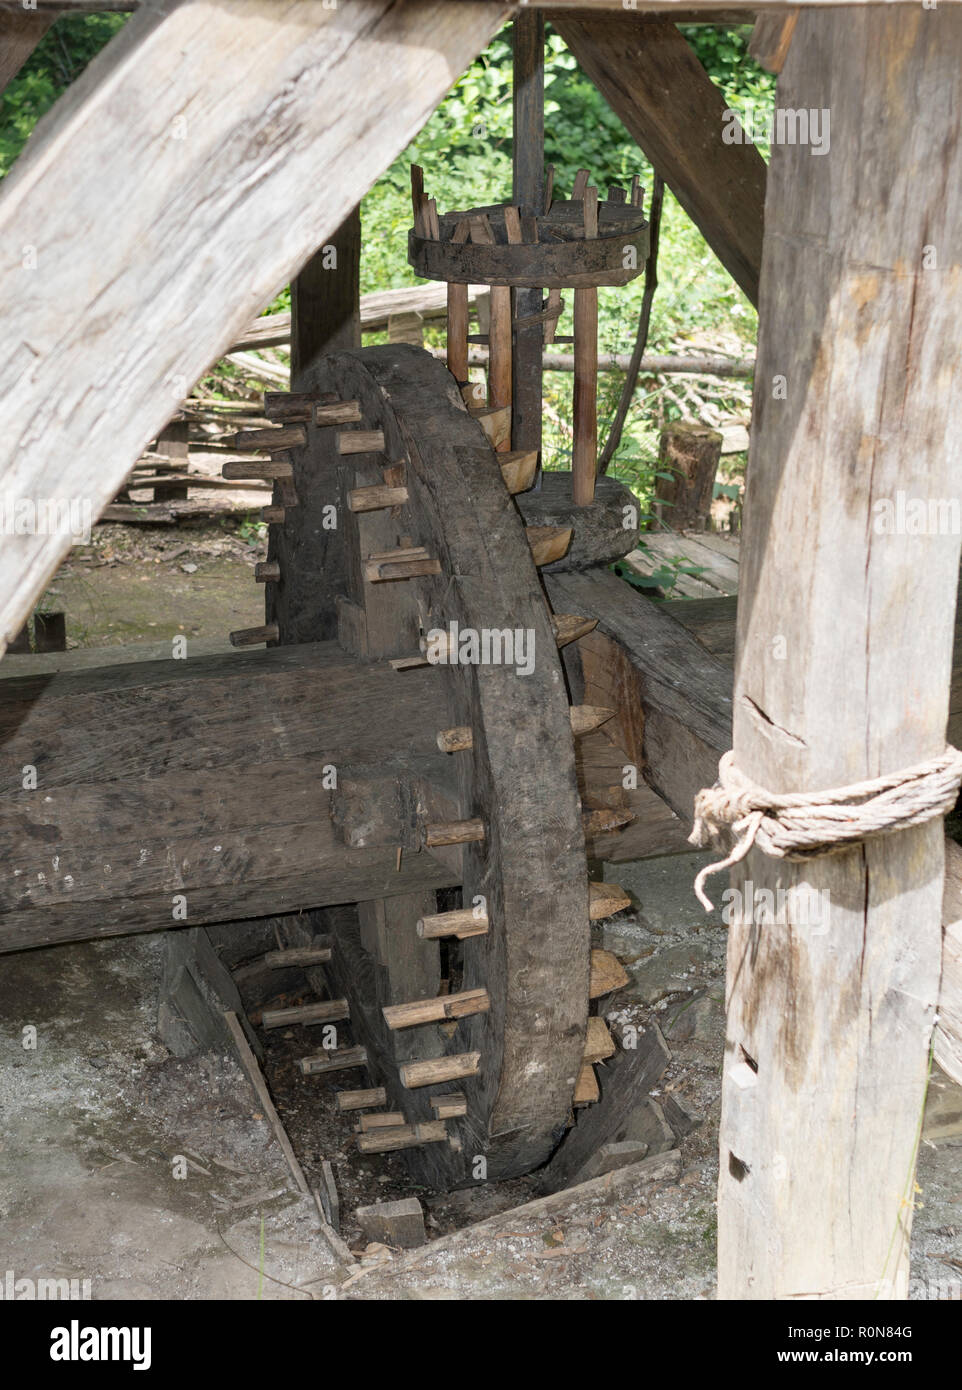 Wooden pin gears with lantern wheel reproduction medieval water mill at Guédelon Castle, Treigny, Yonne , Burgundy, France - Stock Image